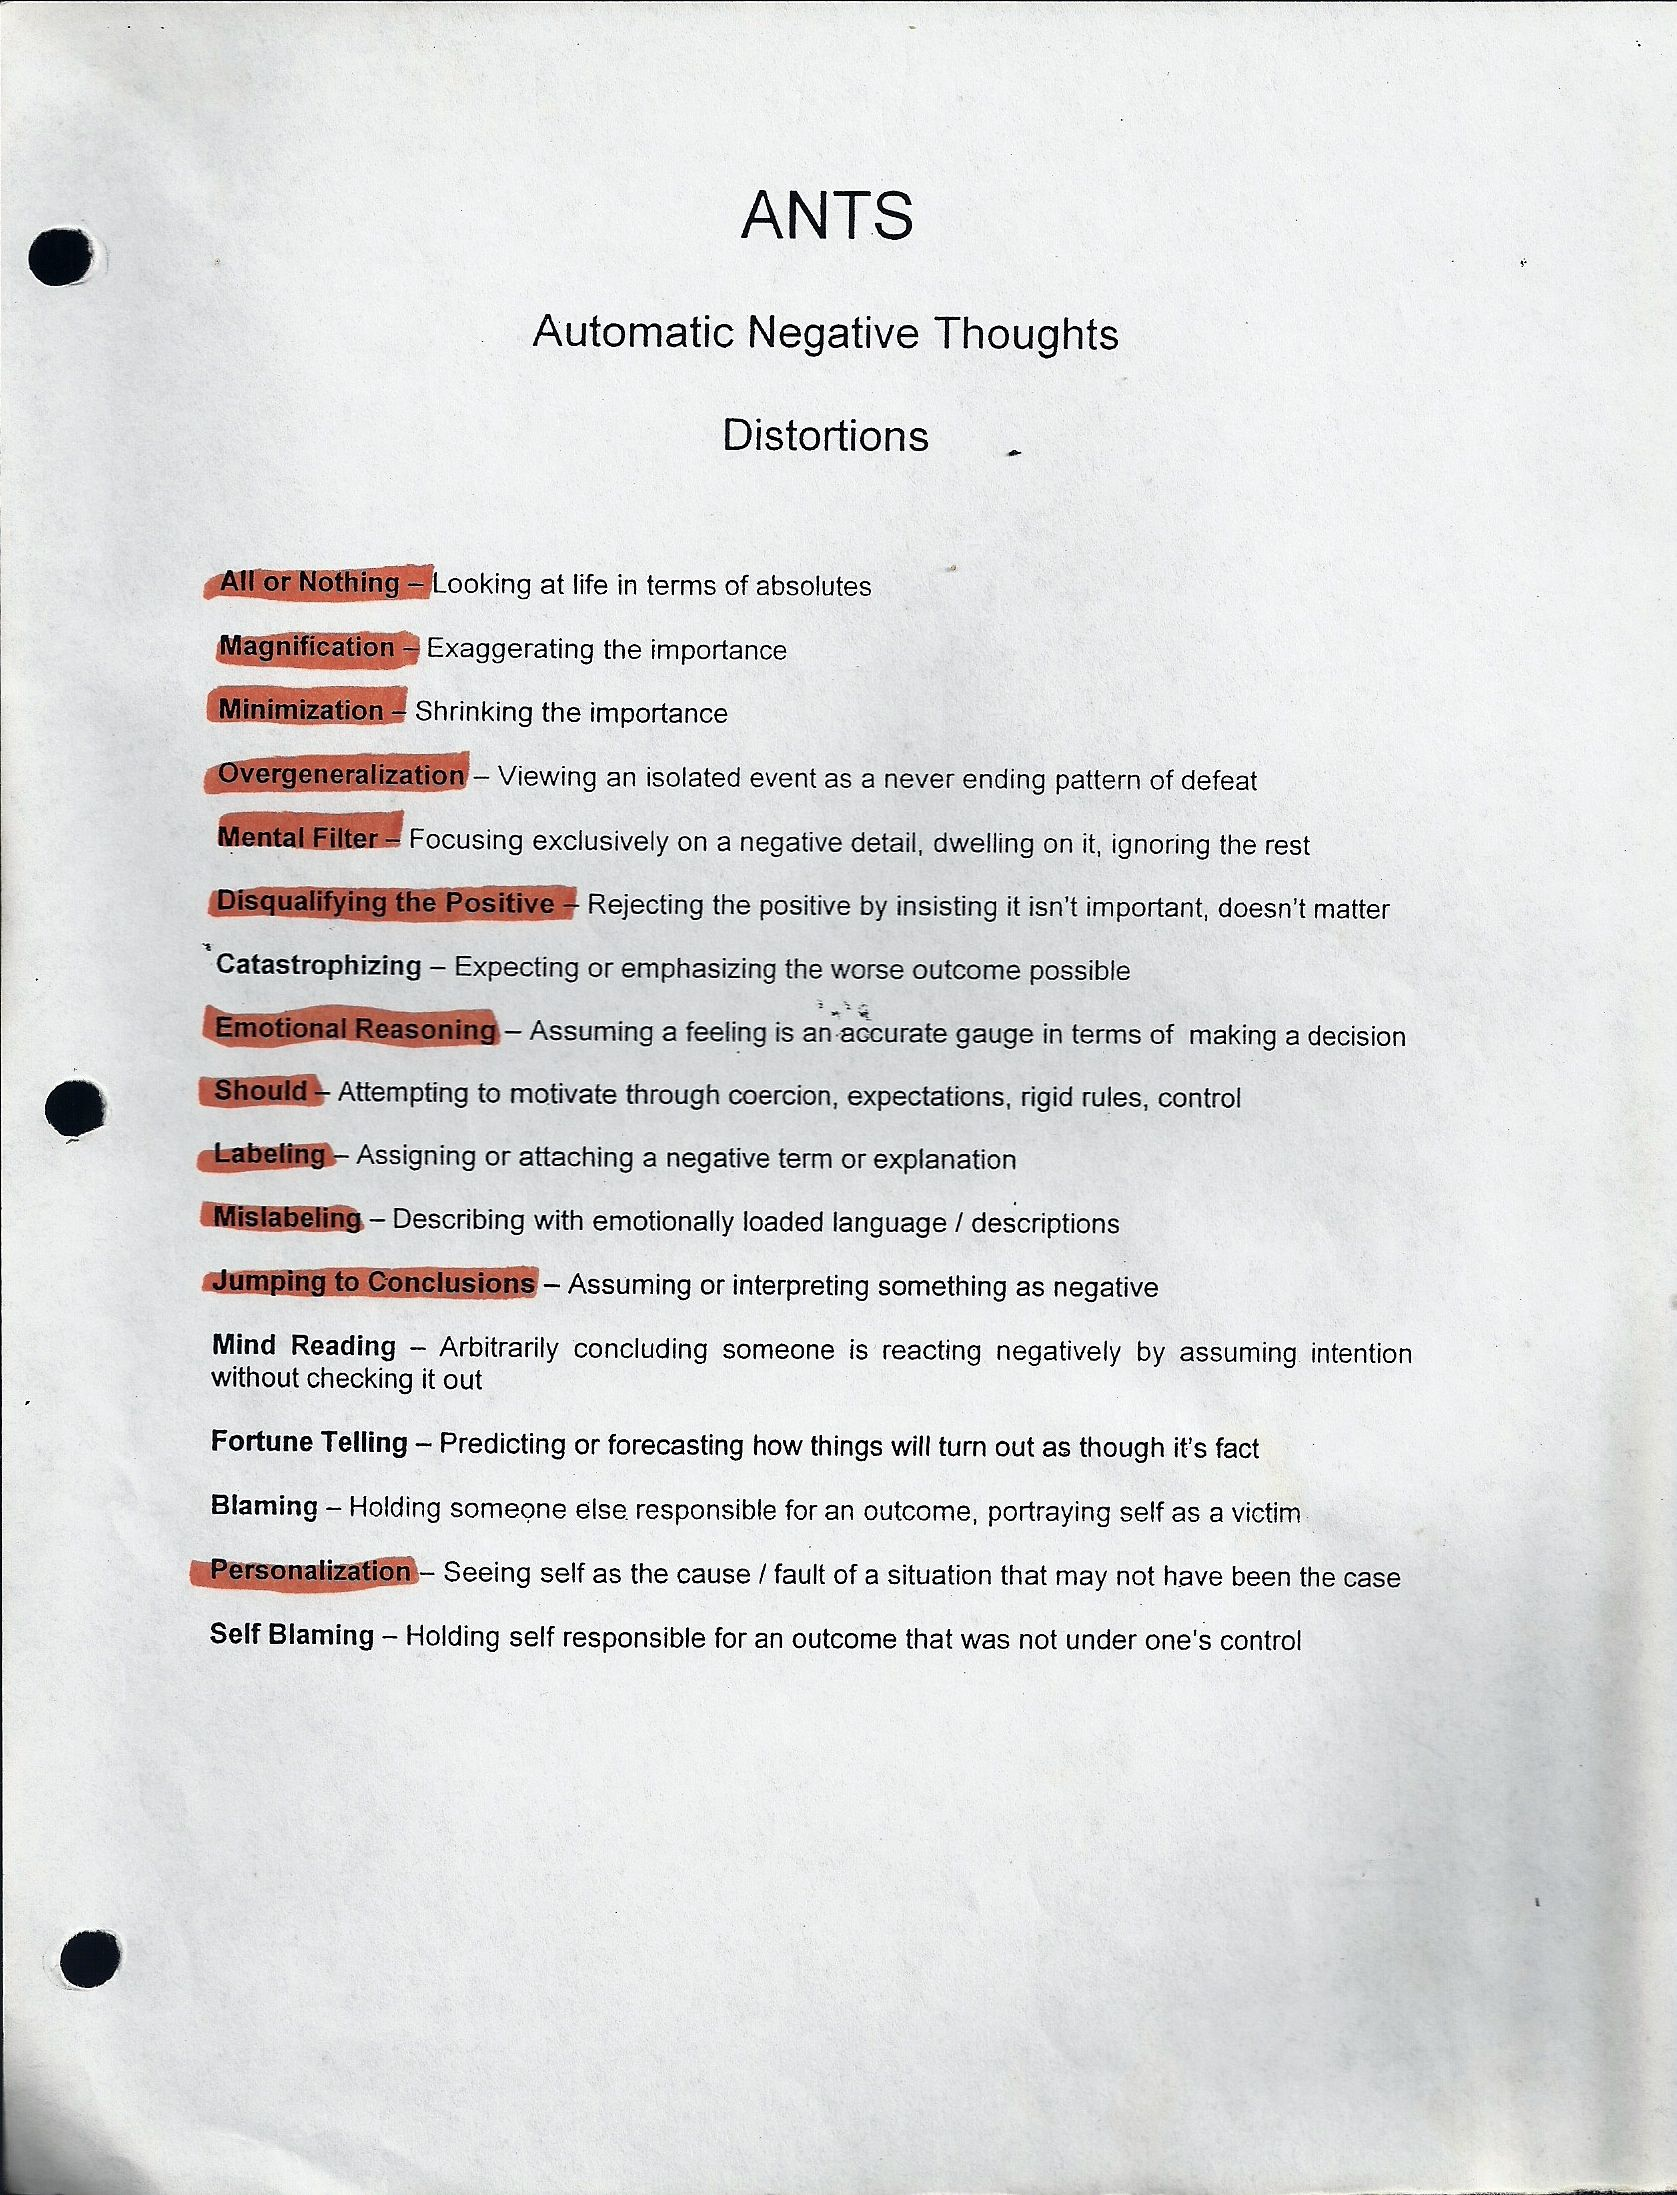 Automatic Negative Thoughts Ants